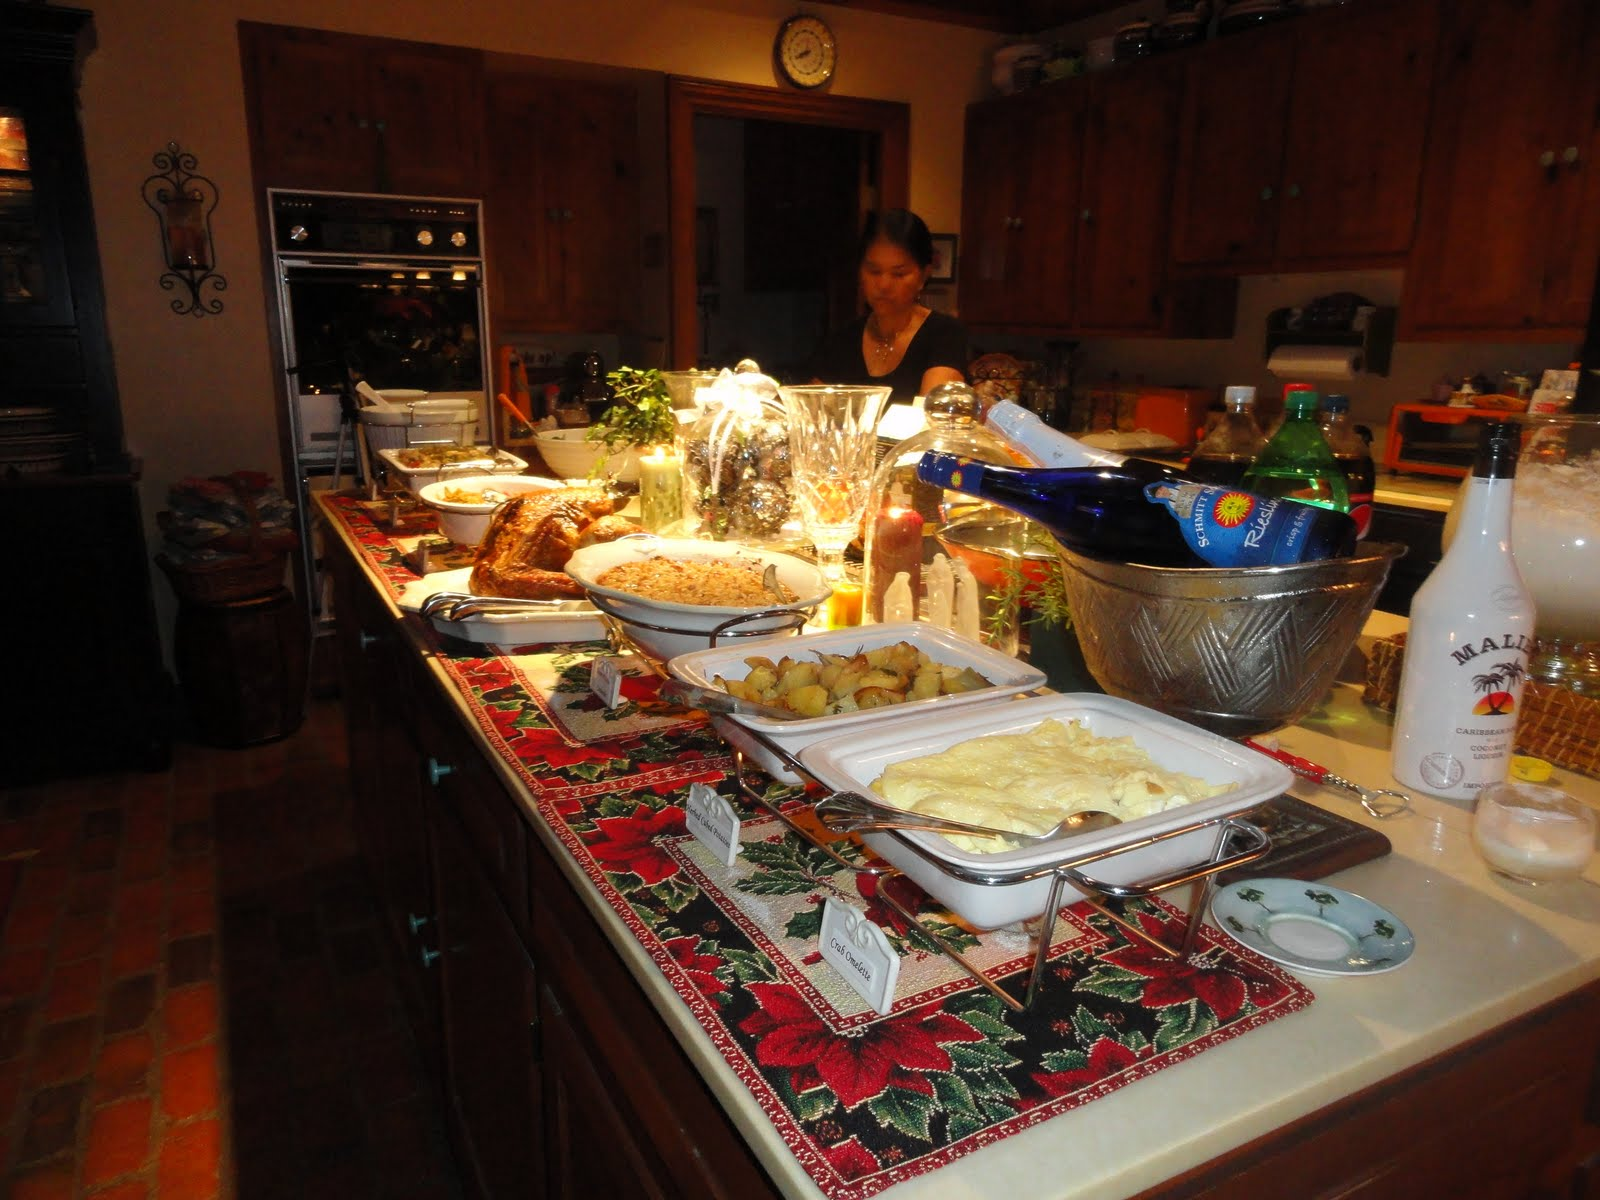 Christine 39 s home and travel adventures dinner party before the new year - Buffet table images ...